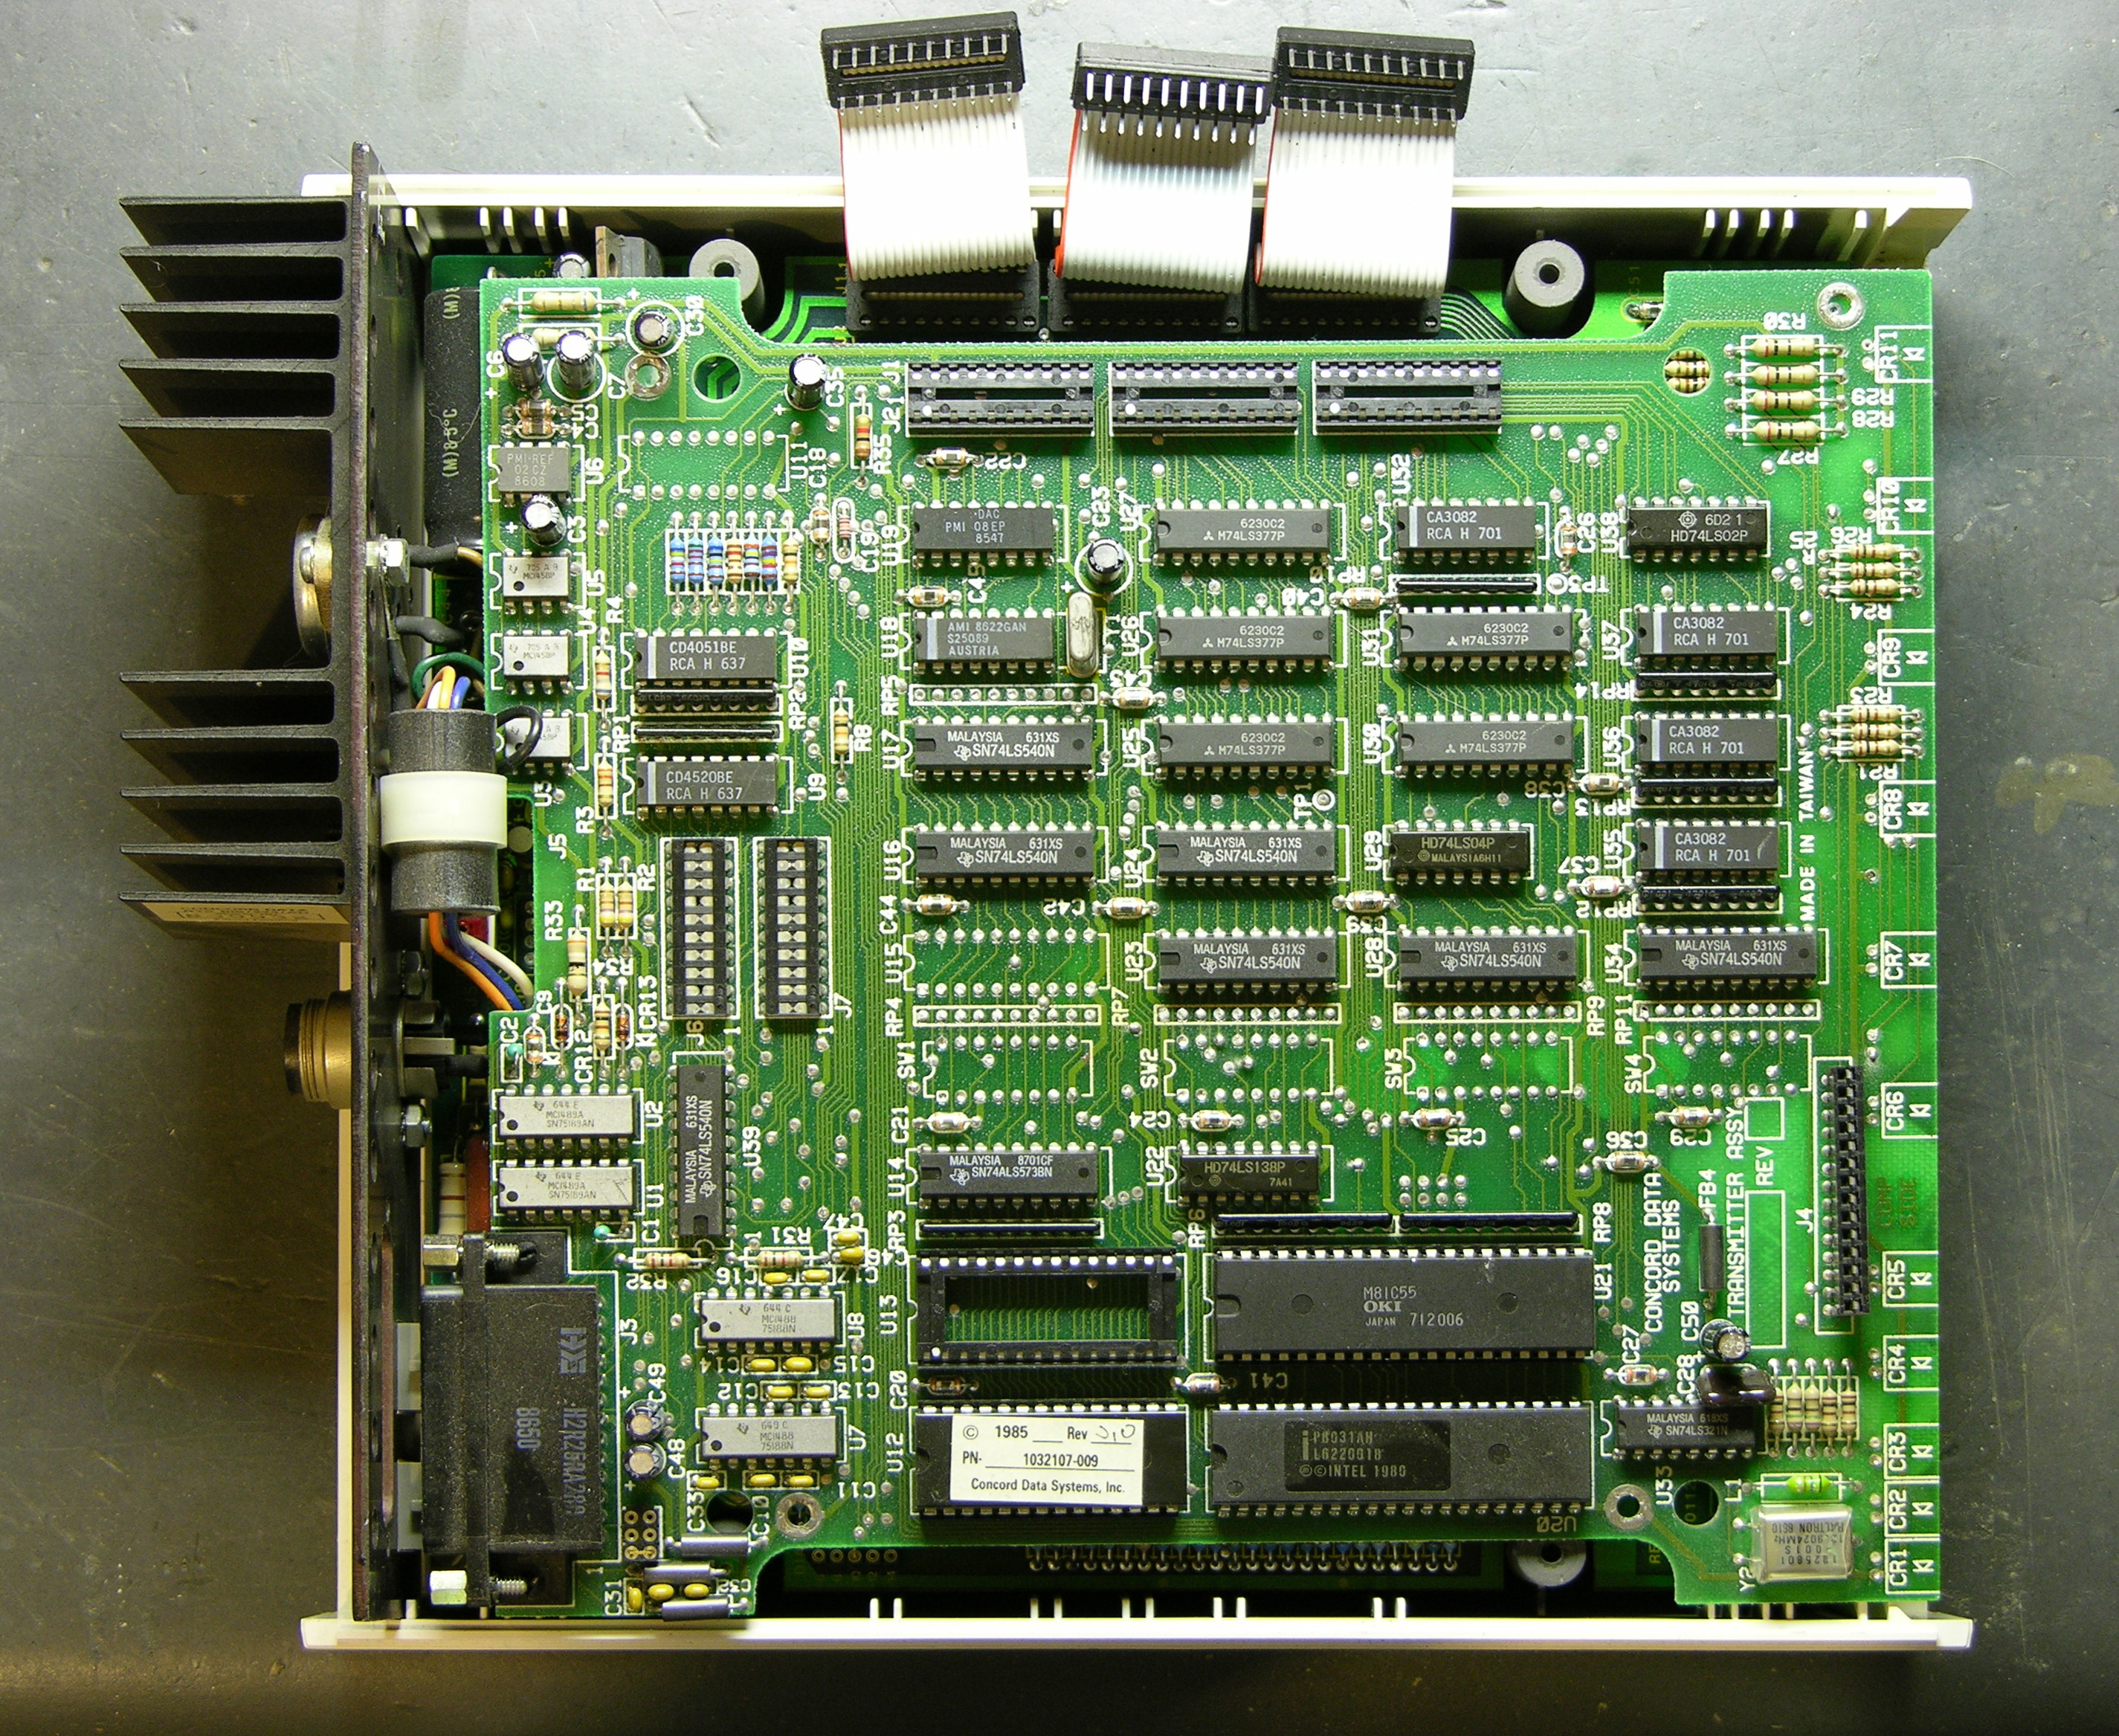 Where To Salvage Electronic Parts Keiths Electronics Blog Dvd Player Circuits Circuit External Modem Boards